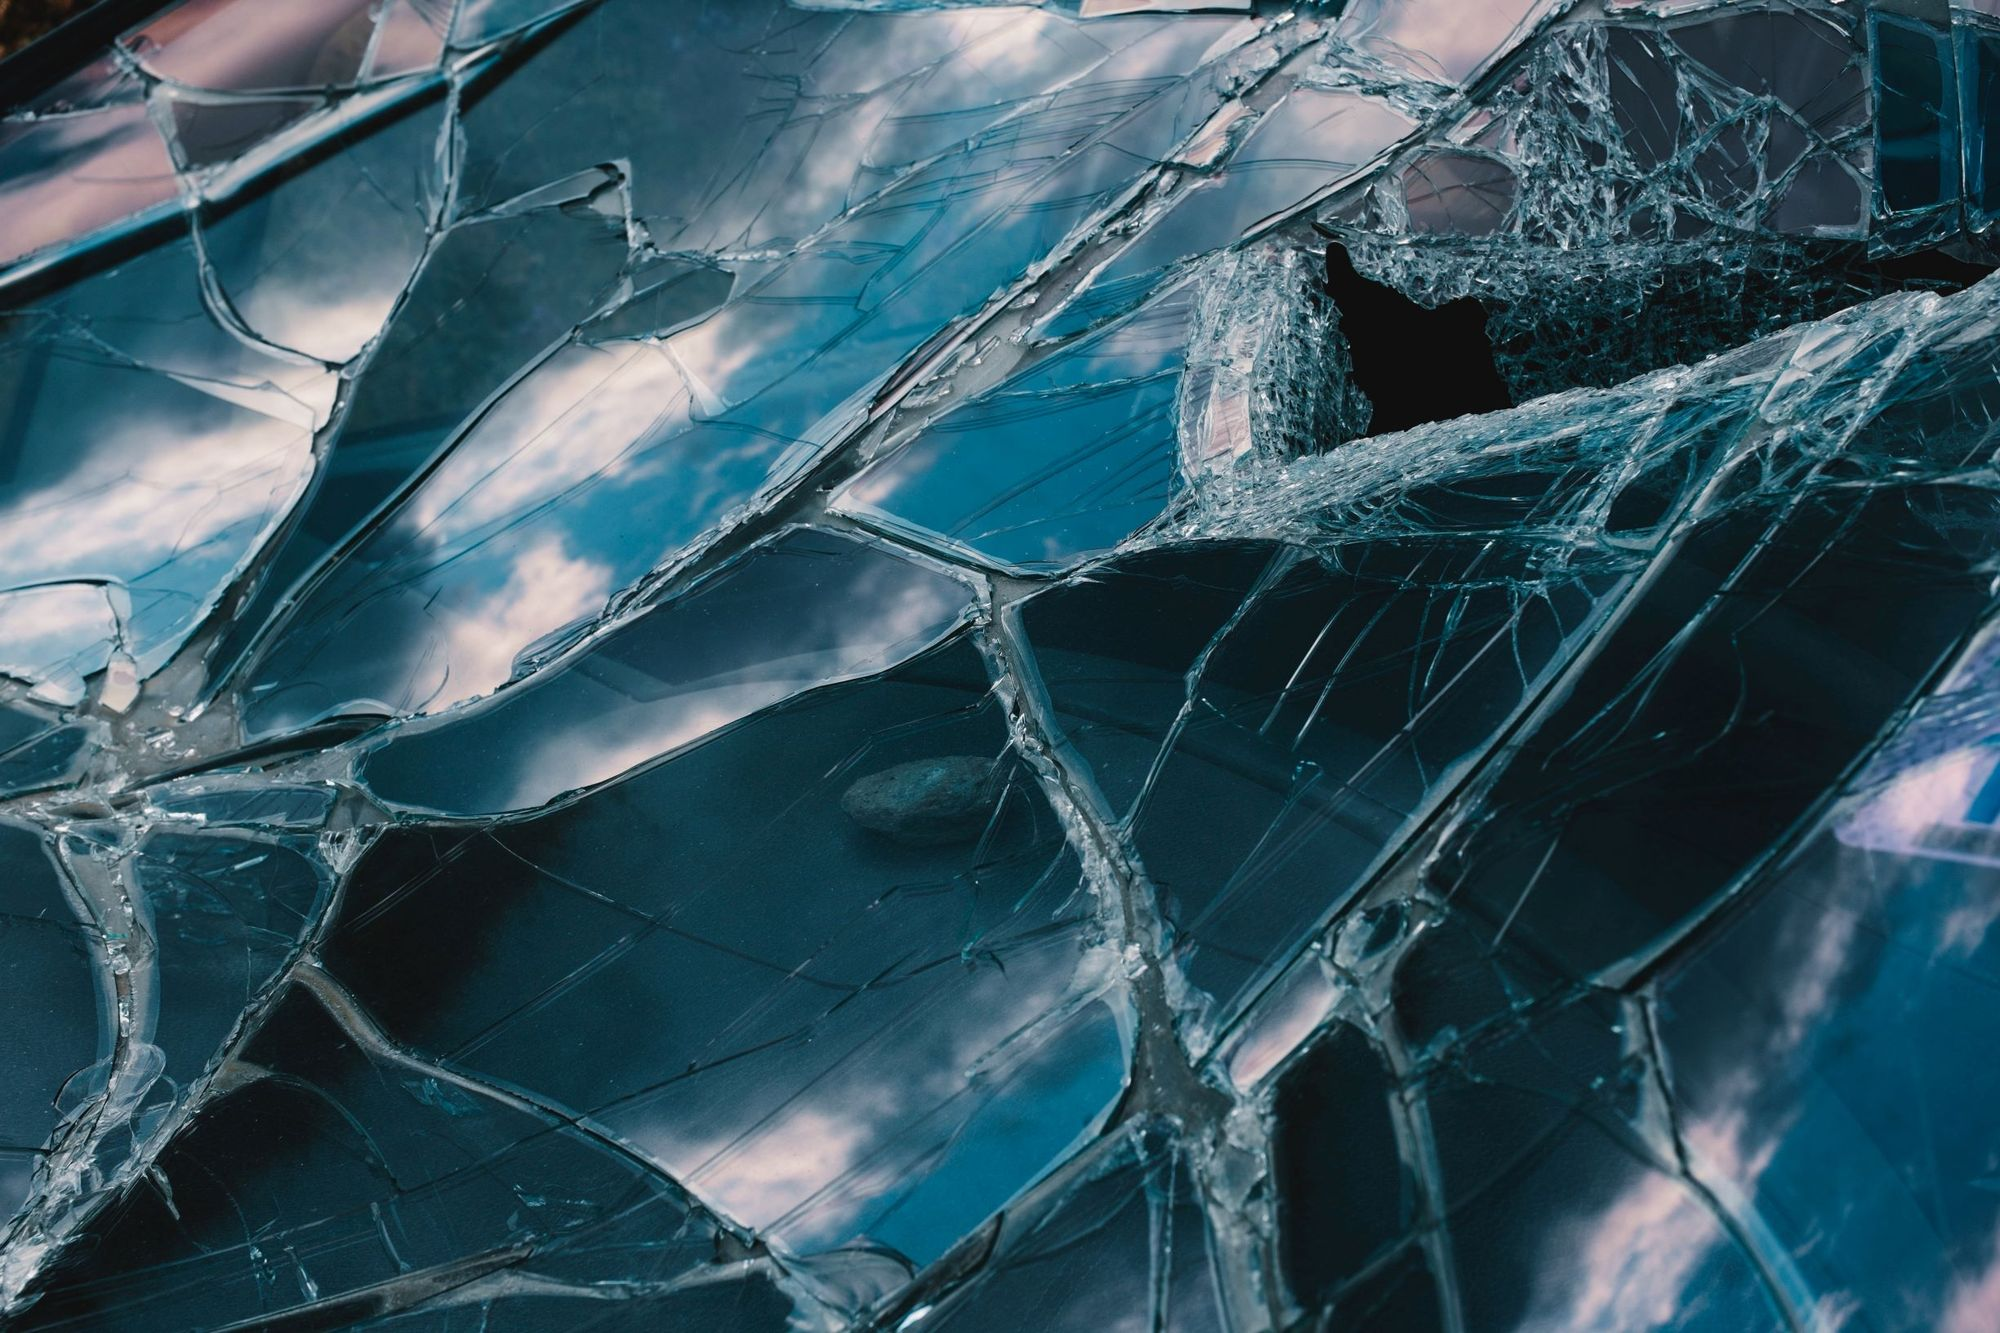 Photo of a cracked windshield.